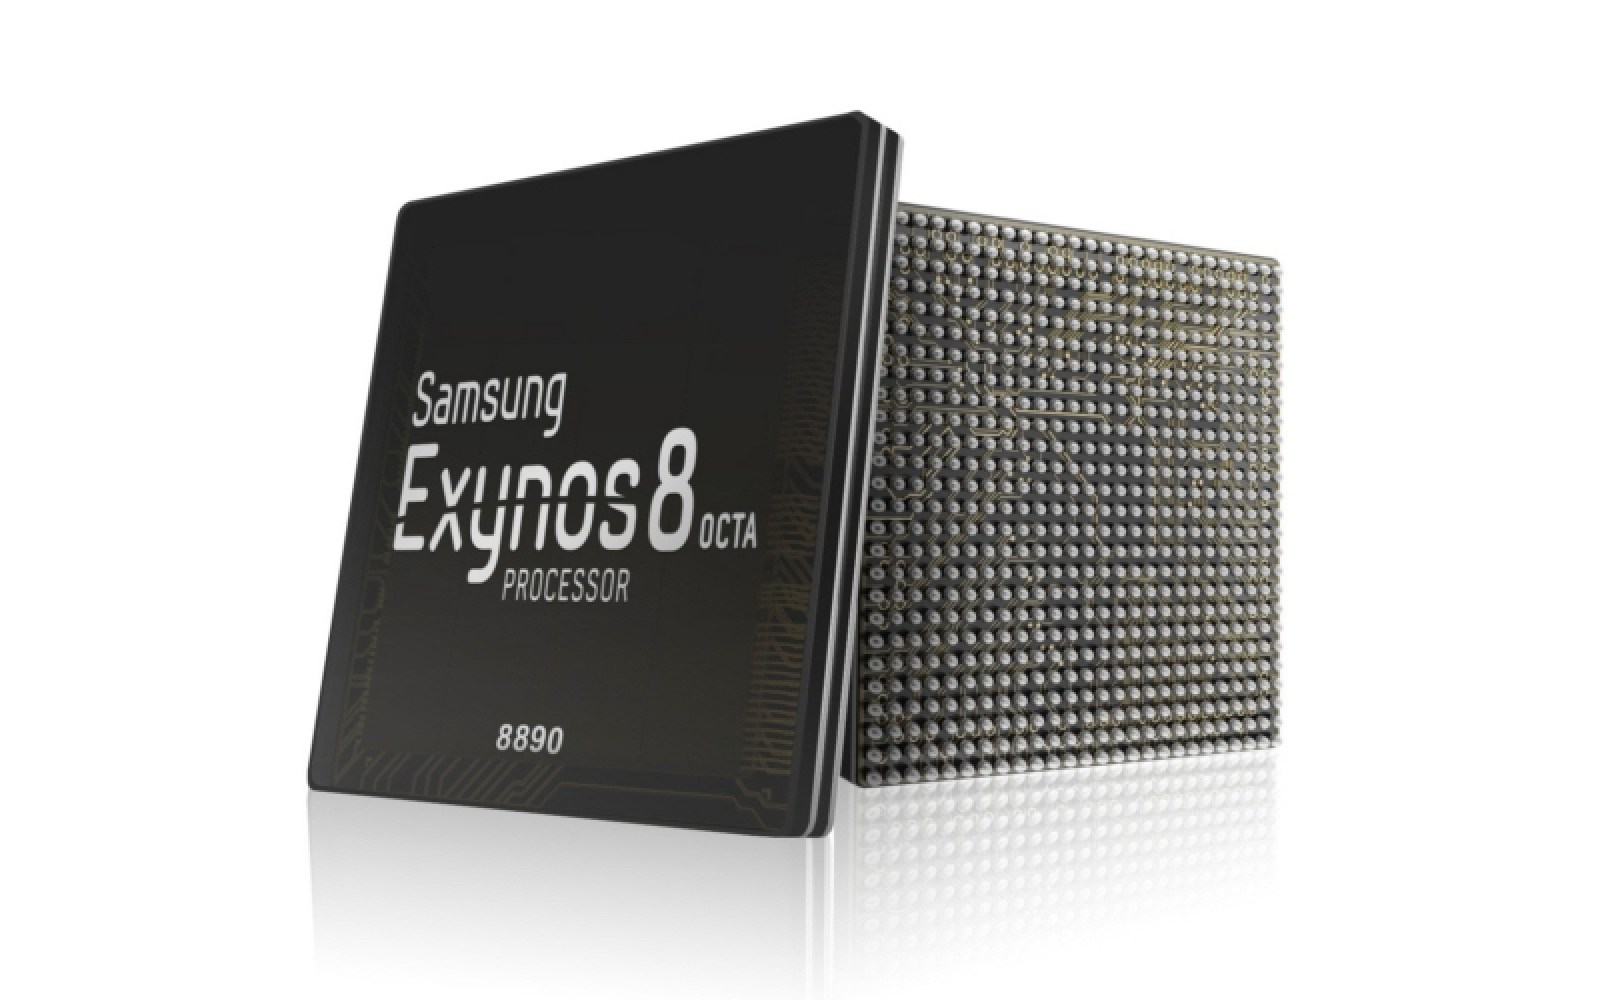 Samsung's Snapdragon 820 competitor, Exynos 8890 octa-core chip official